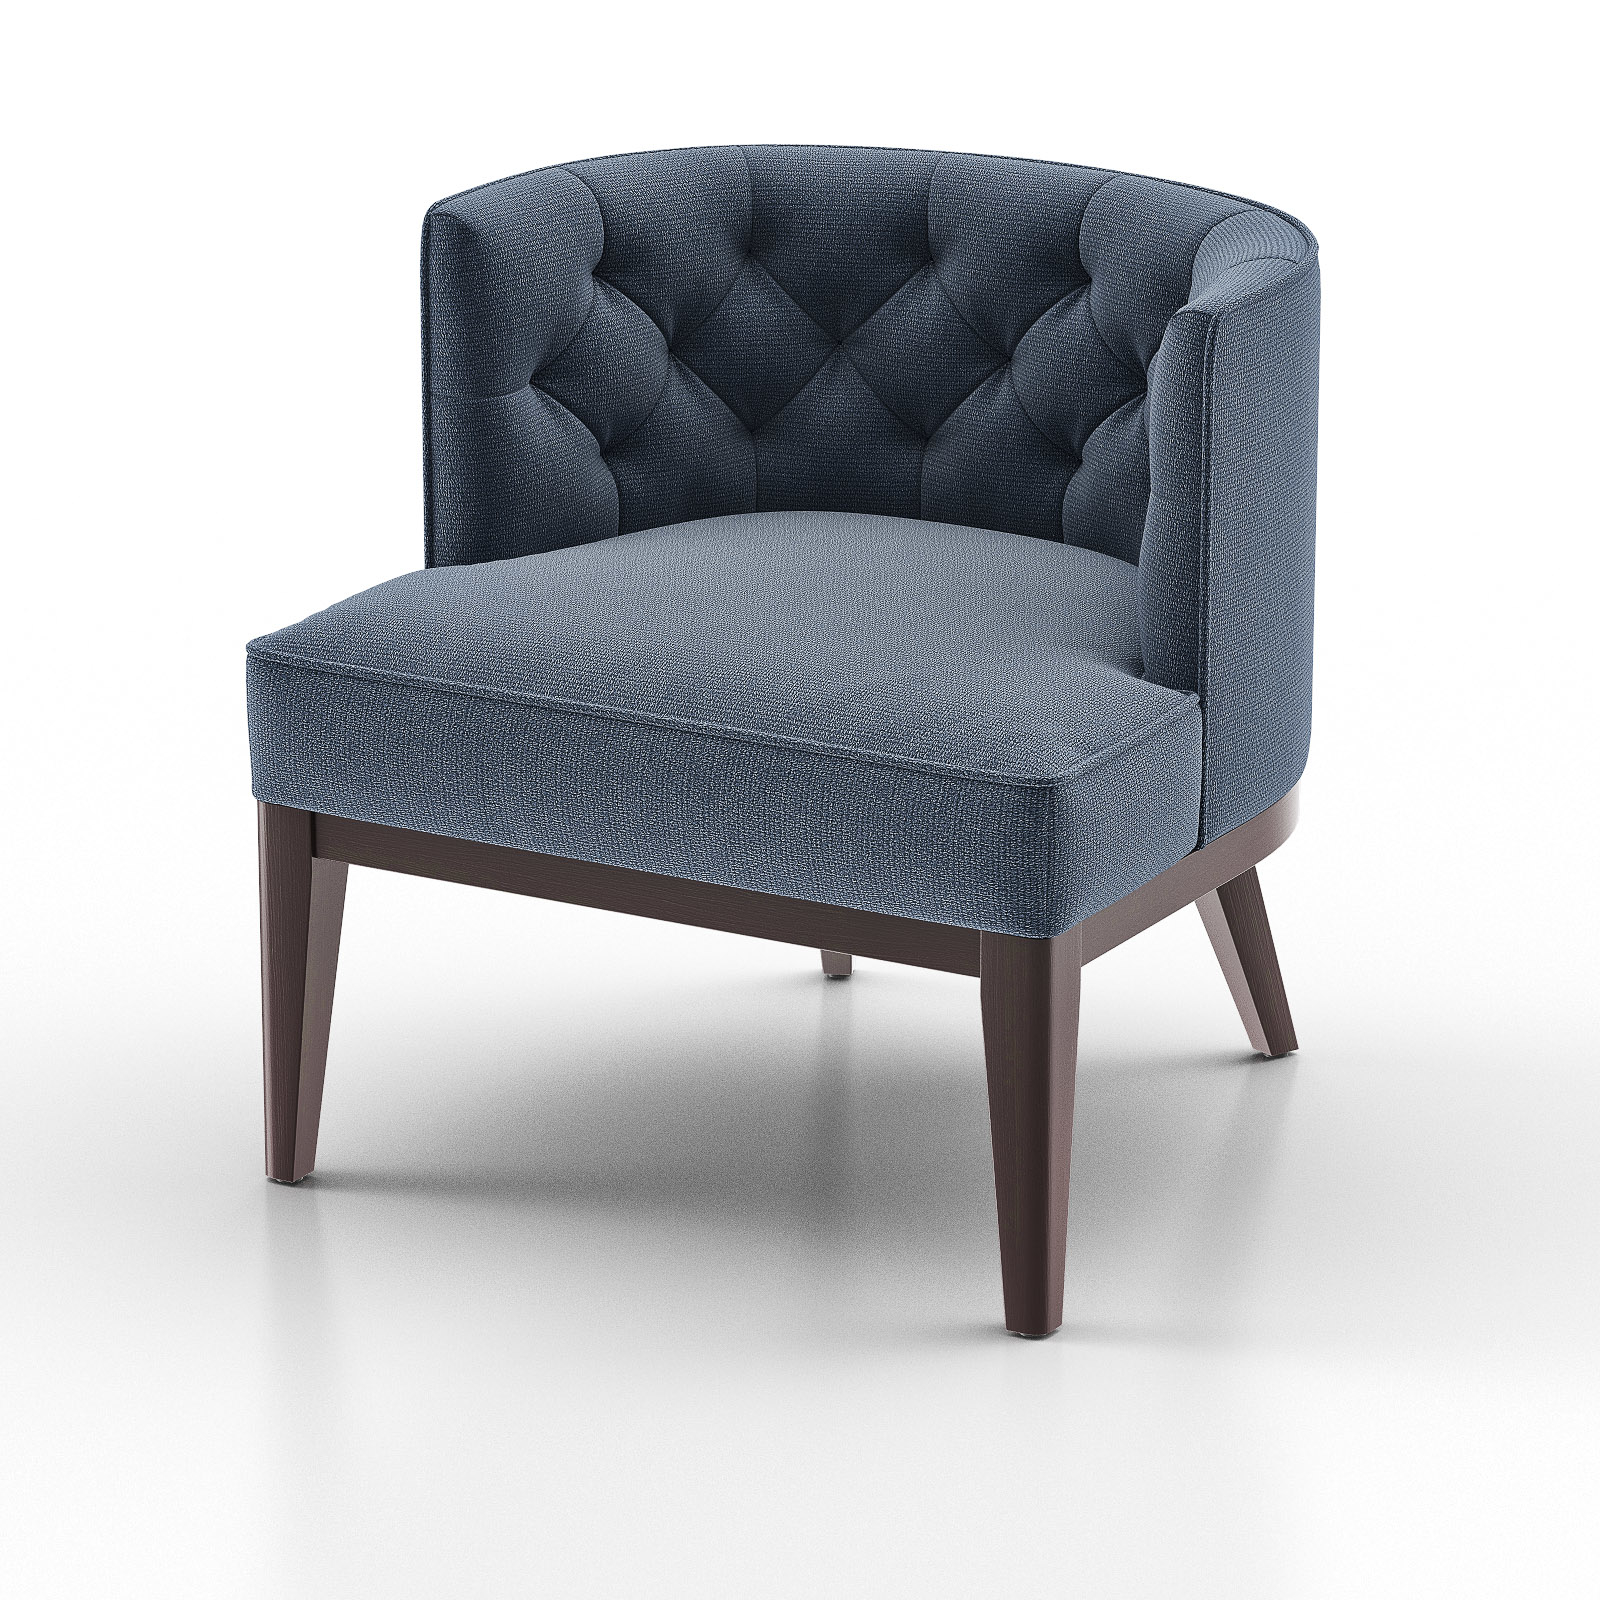 Grayson Tufted Chair